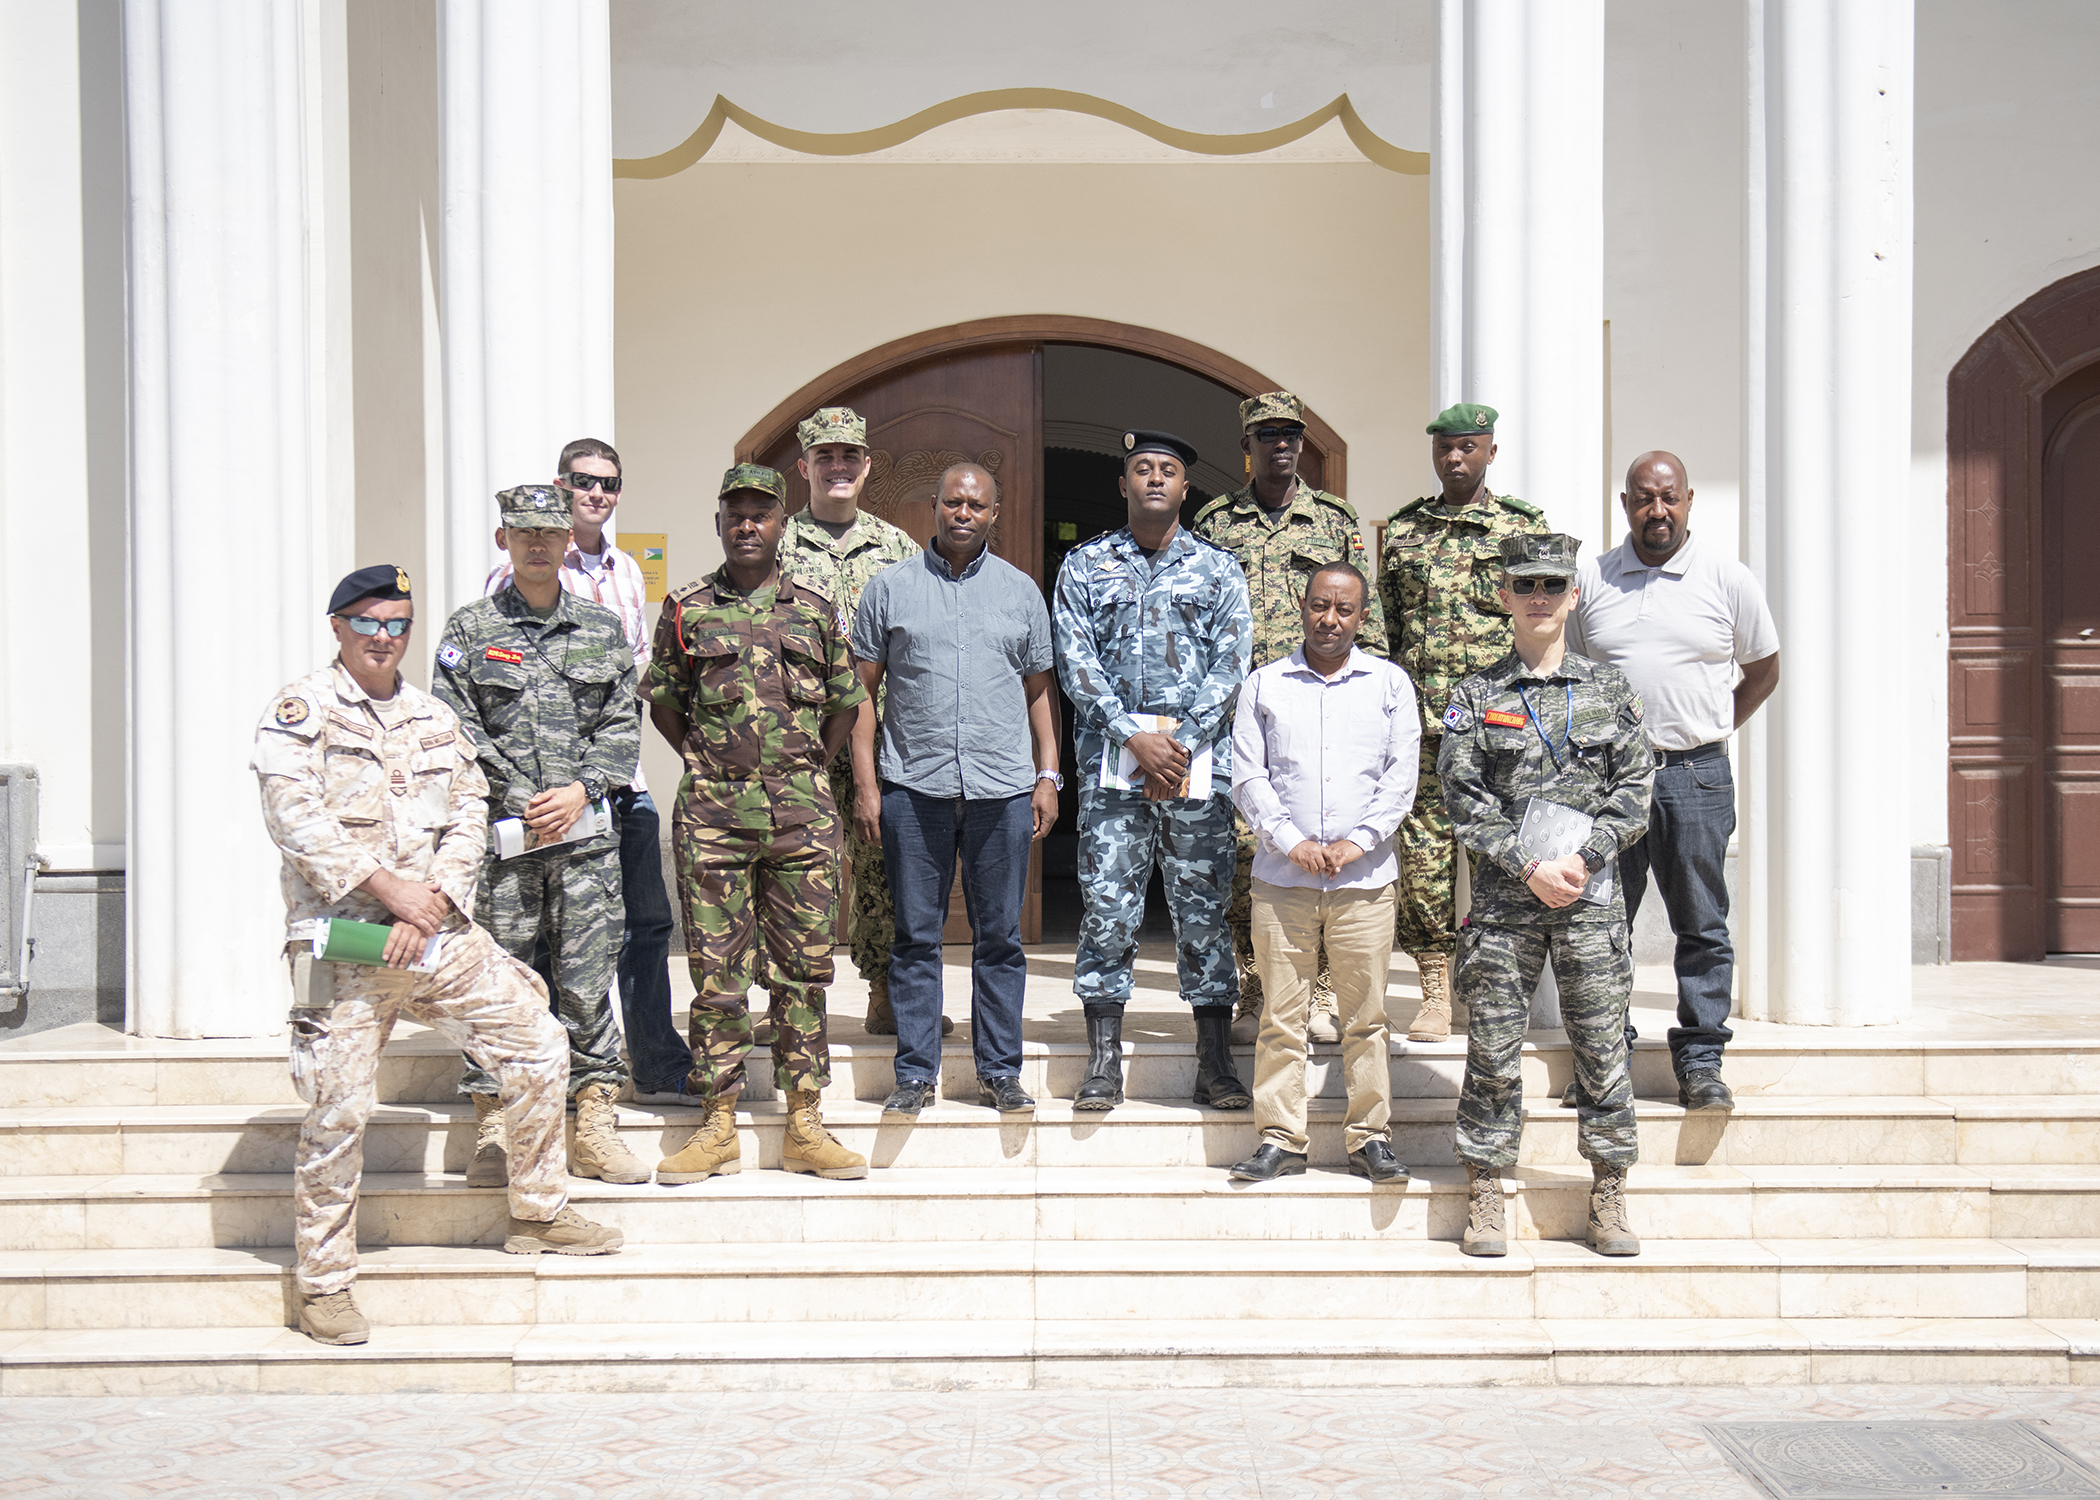 Foreign Liaison Officers and U.S. military members assigned to Combined Joint Task Force-Horn of Africa, and officials from the Intergovernmental Authority on Development pose for a photo during their first-ever formal meeting in Djibouti, Jan. 16, 2019. The purpose of the meeting was for both parties to familiarize themselves with each other's missions and goals through a short information exchange and set the stance for future meetings. (U.S. Air Force photo by Tech. Sgt. Shawn Nickel)